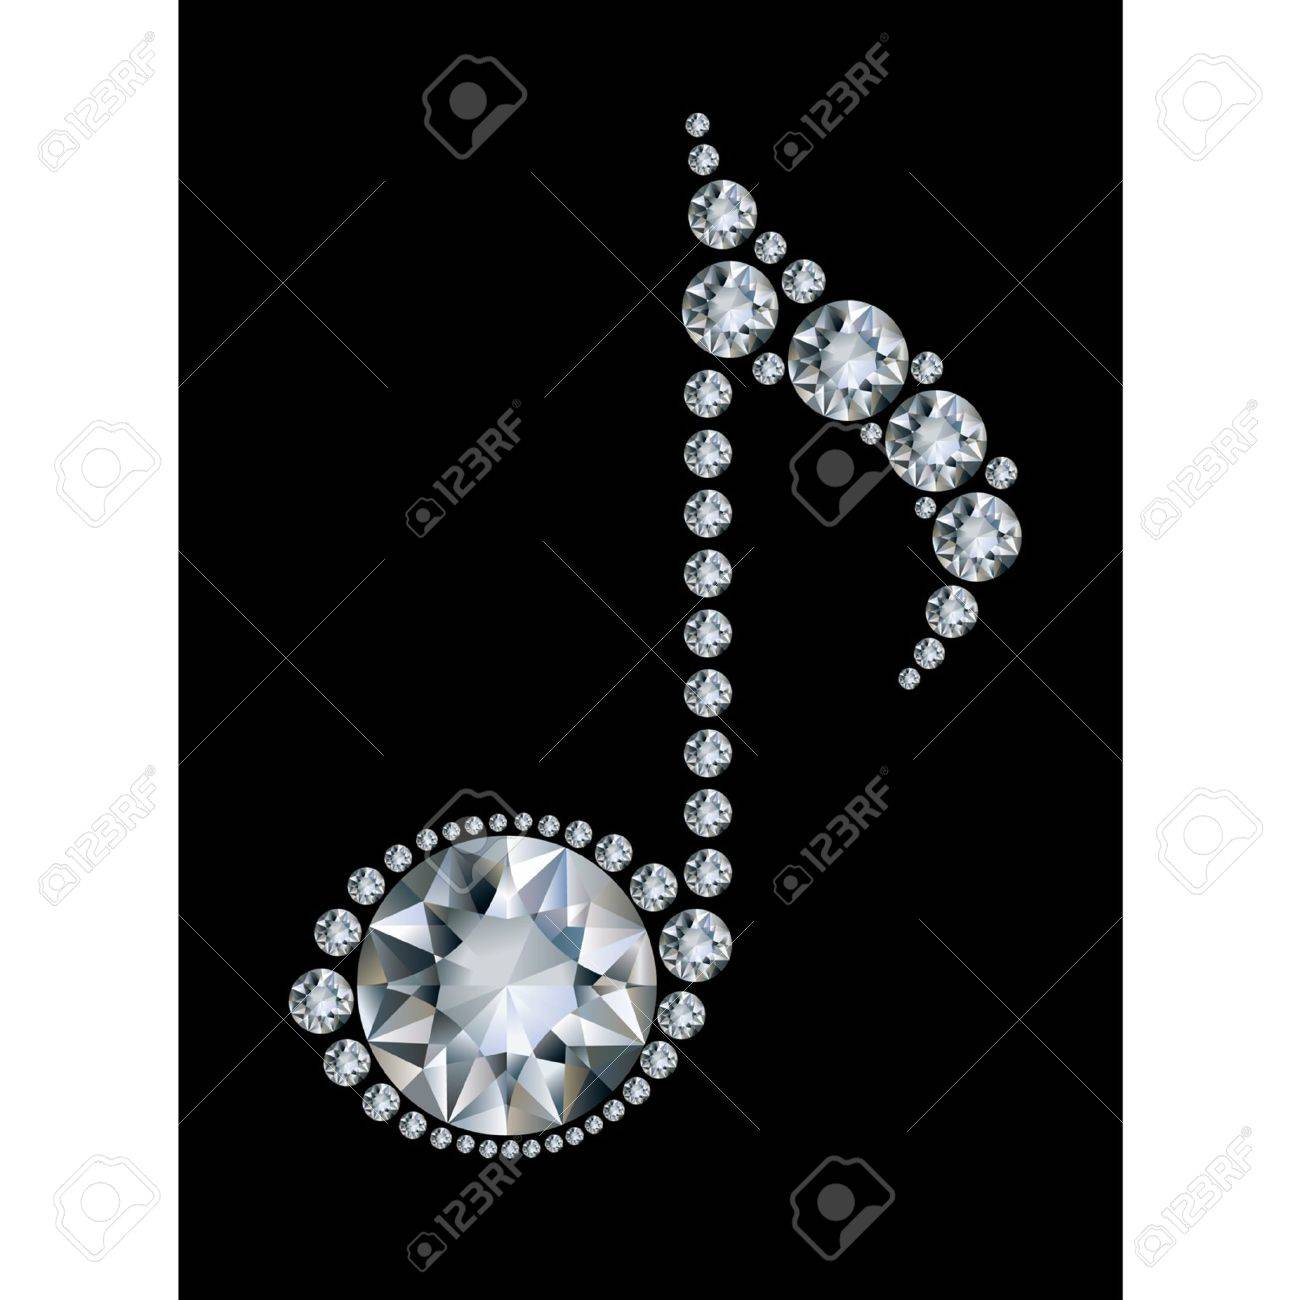 Diamond Music Note On Black Background Royalty Free Cliparts